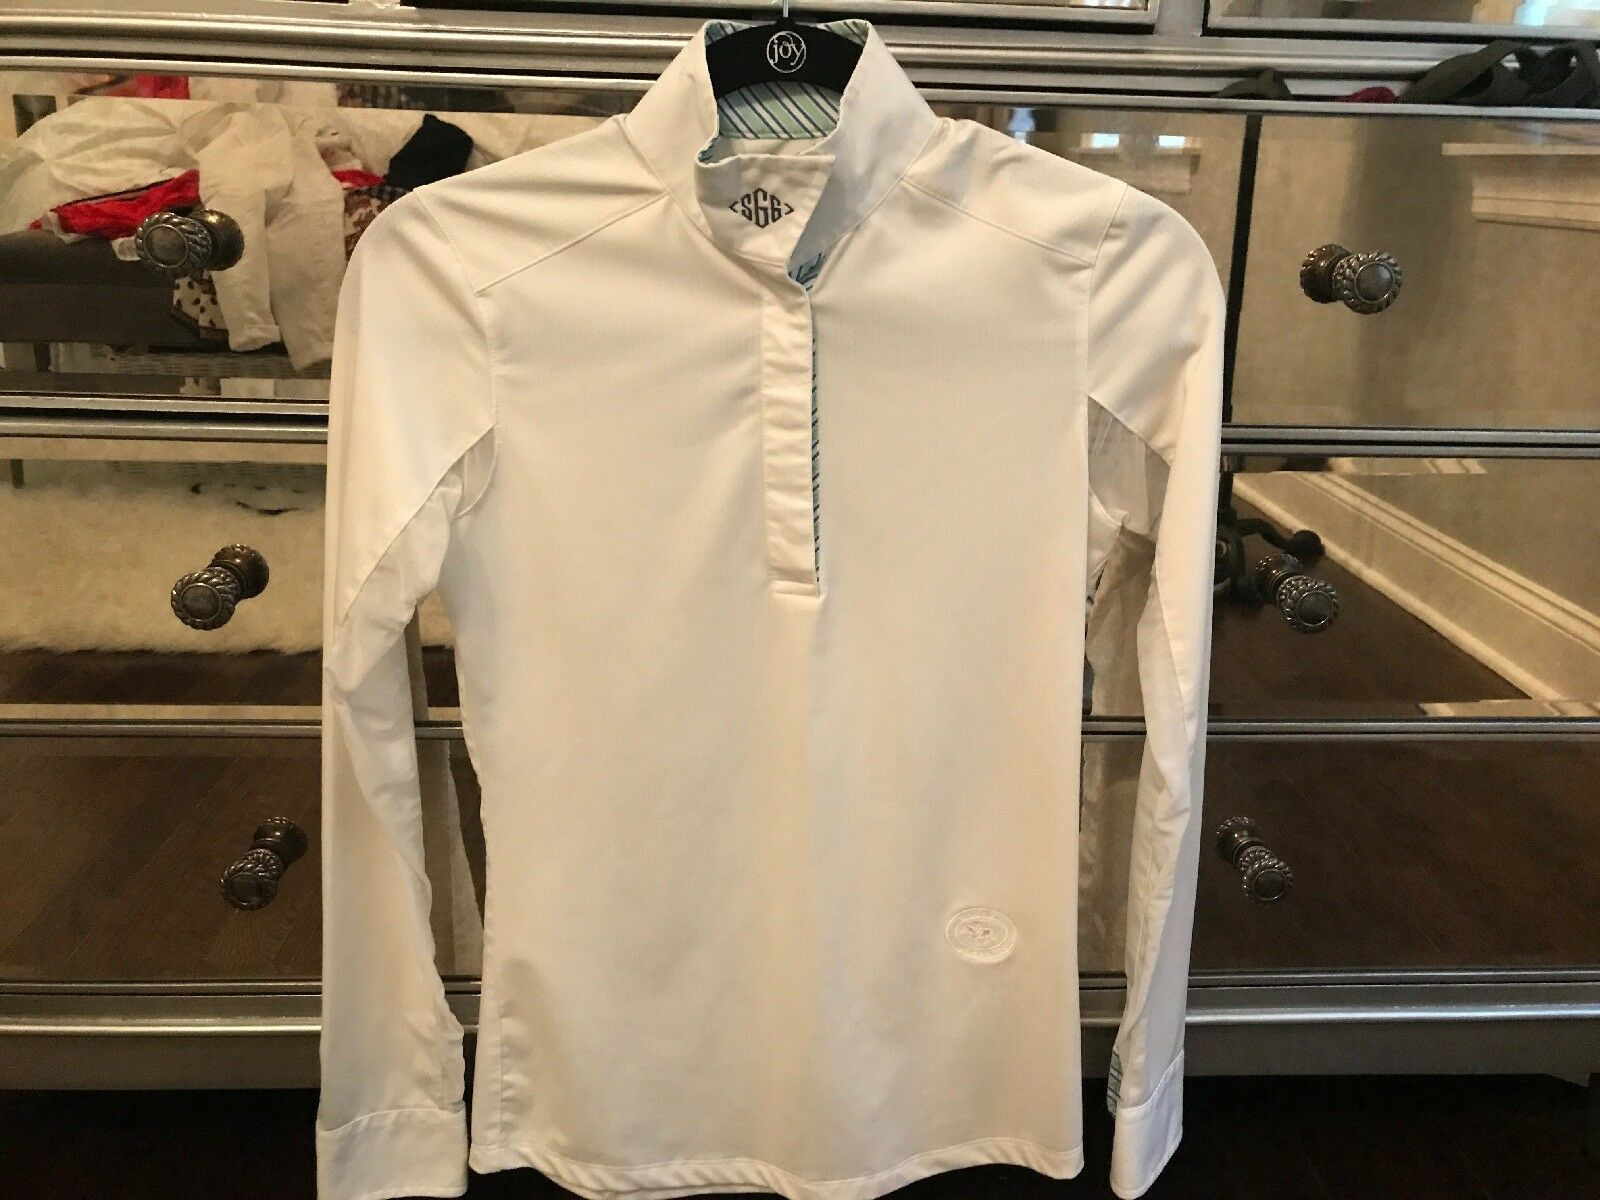 Essex classics size XS with vents